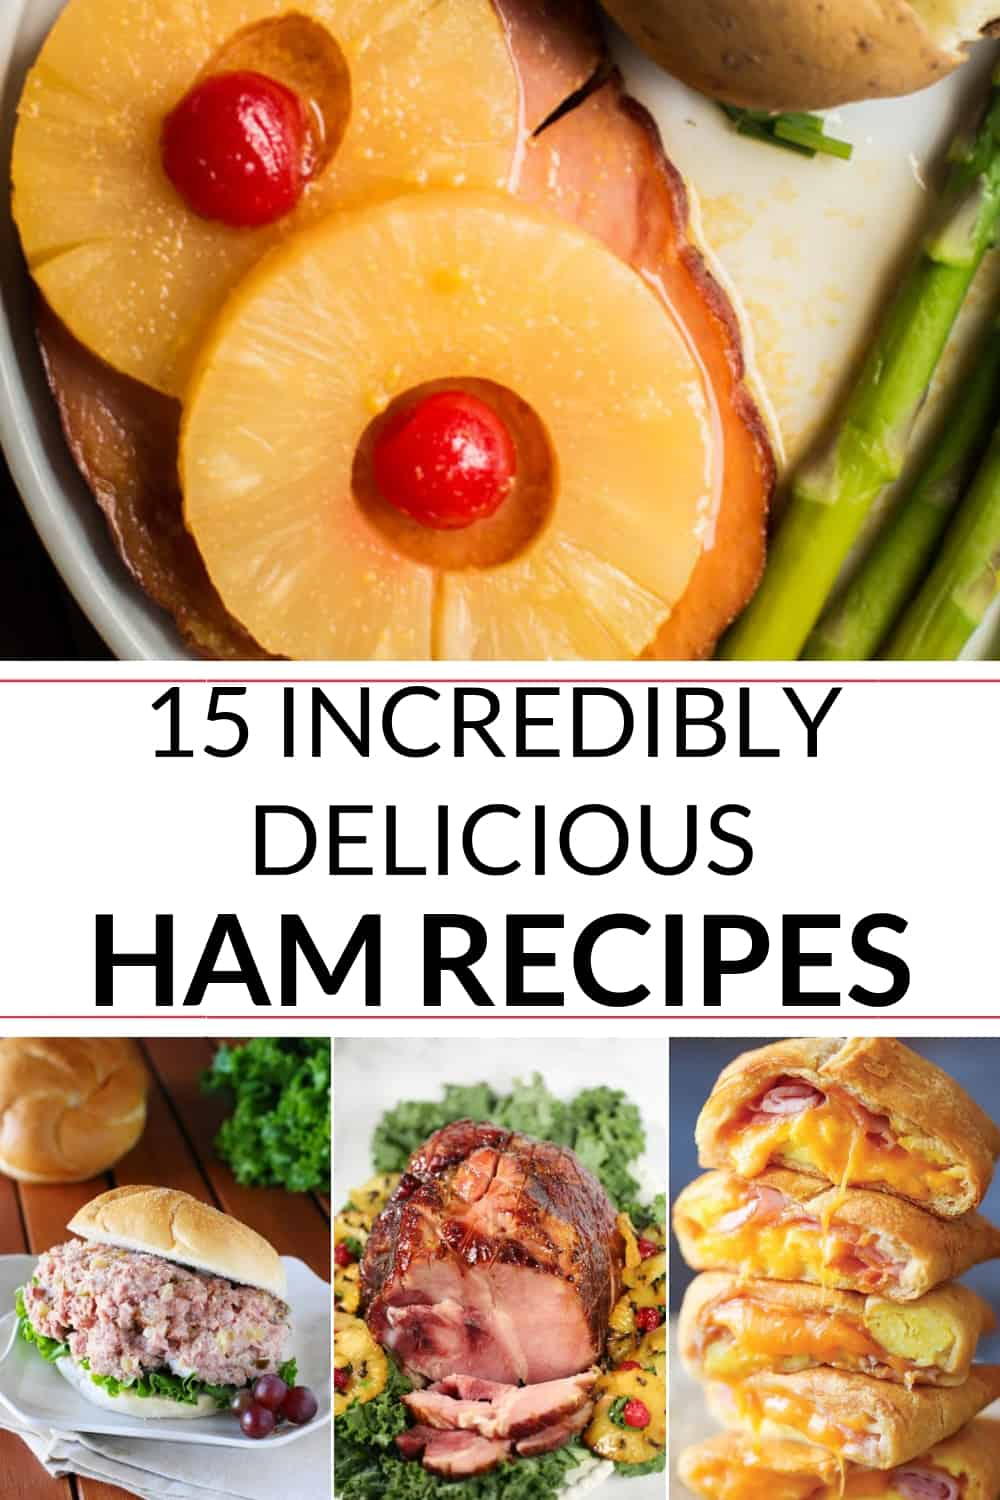 A collection of delicious baked ham recipe